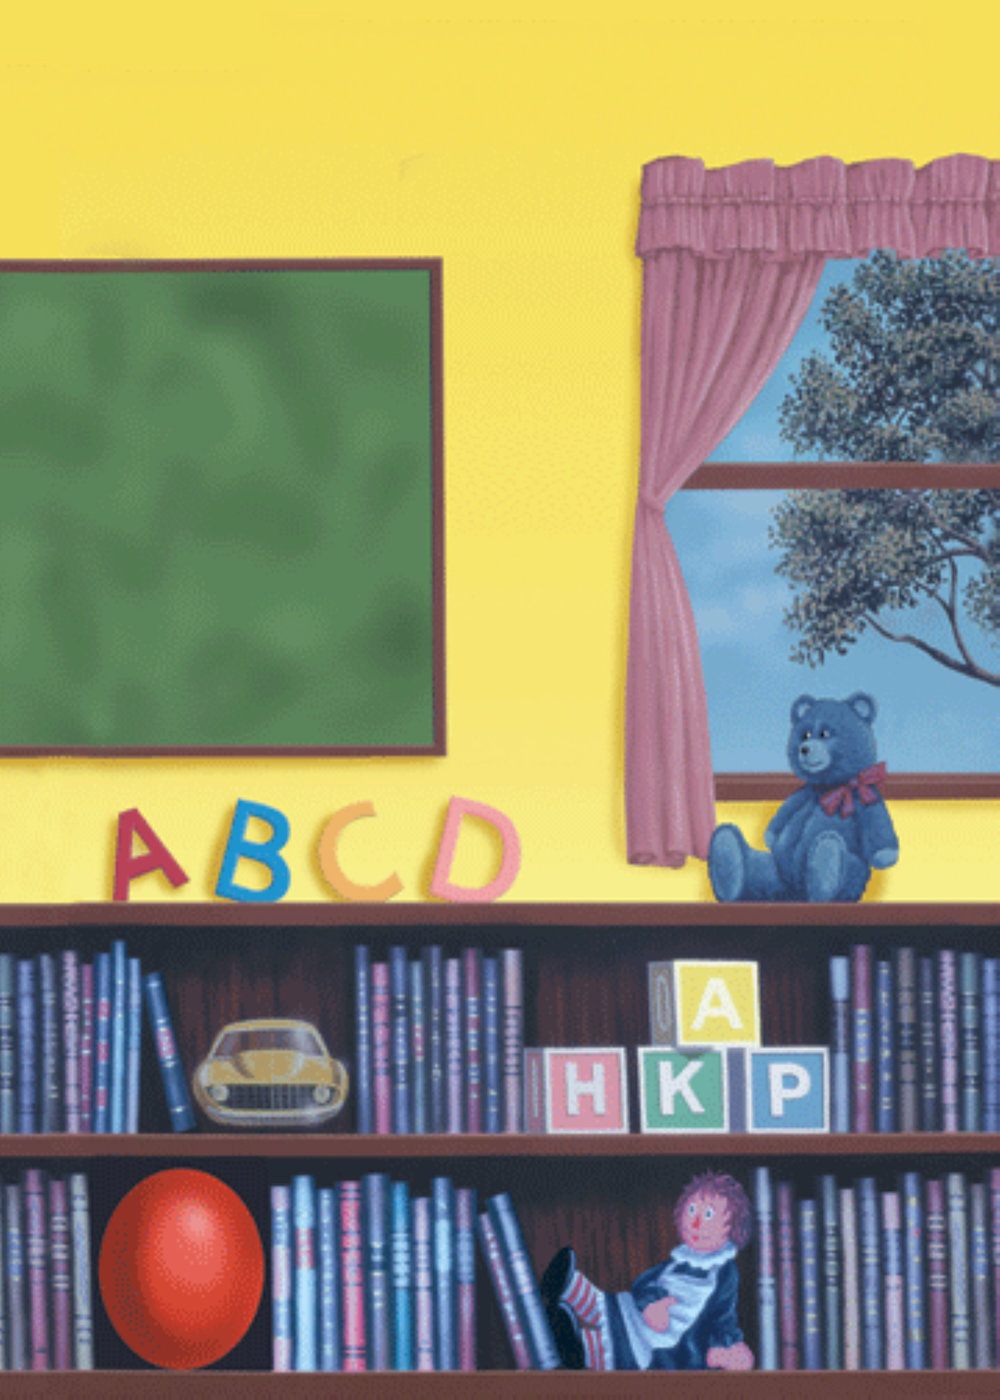 Kindergrad Background A - Library